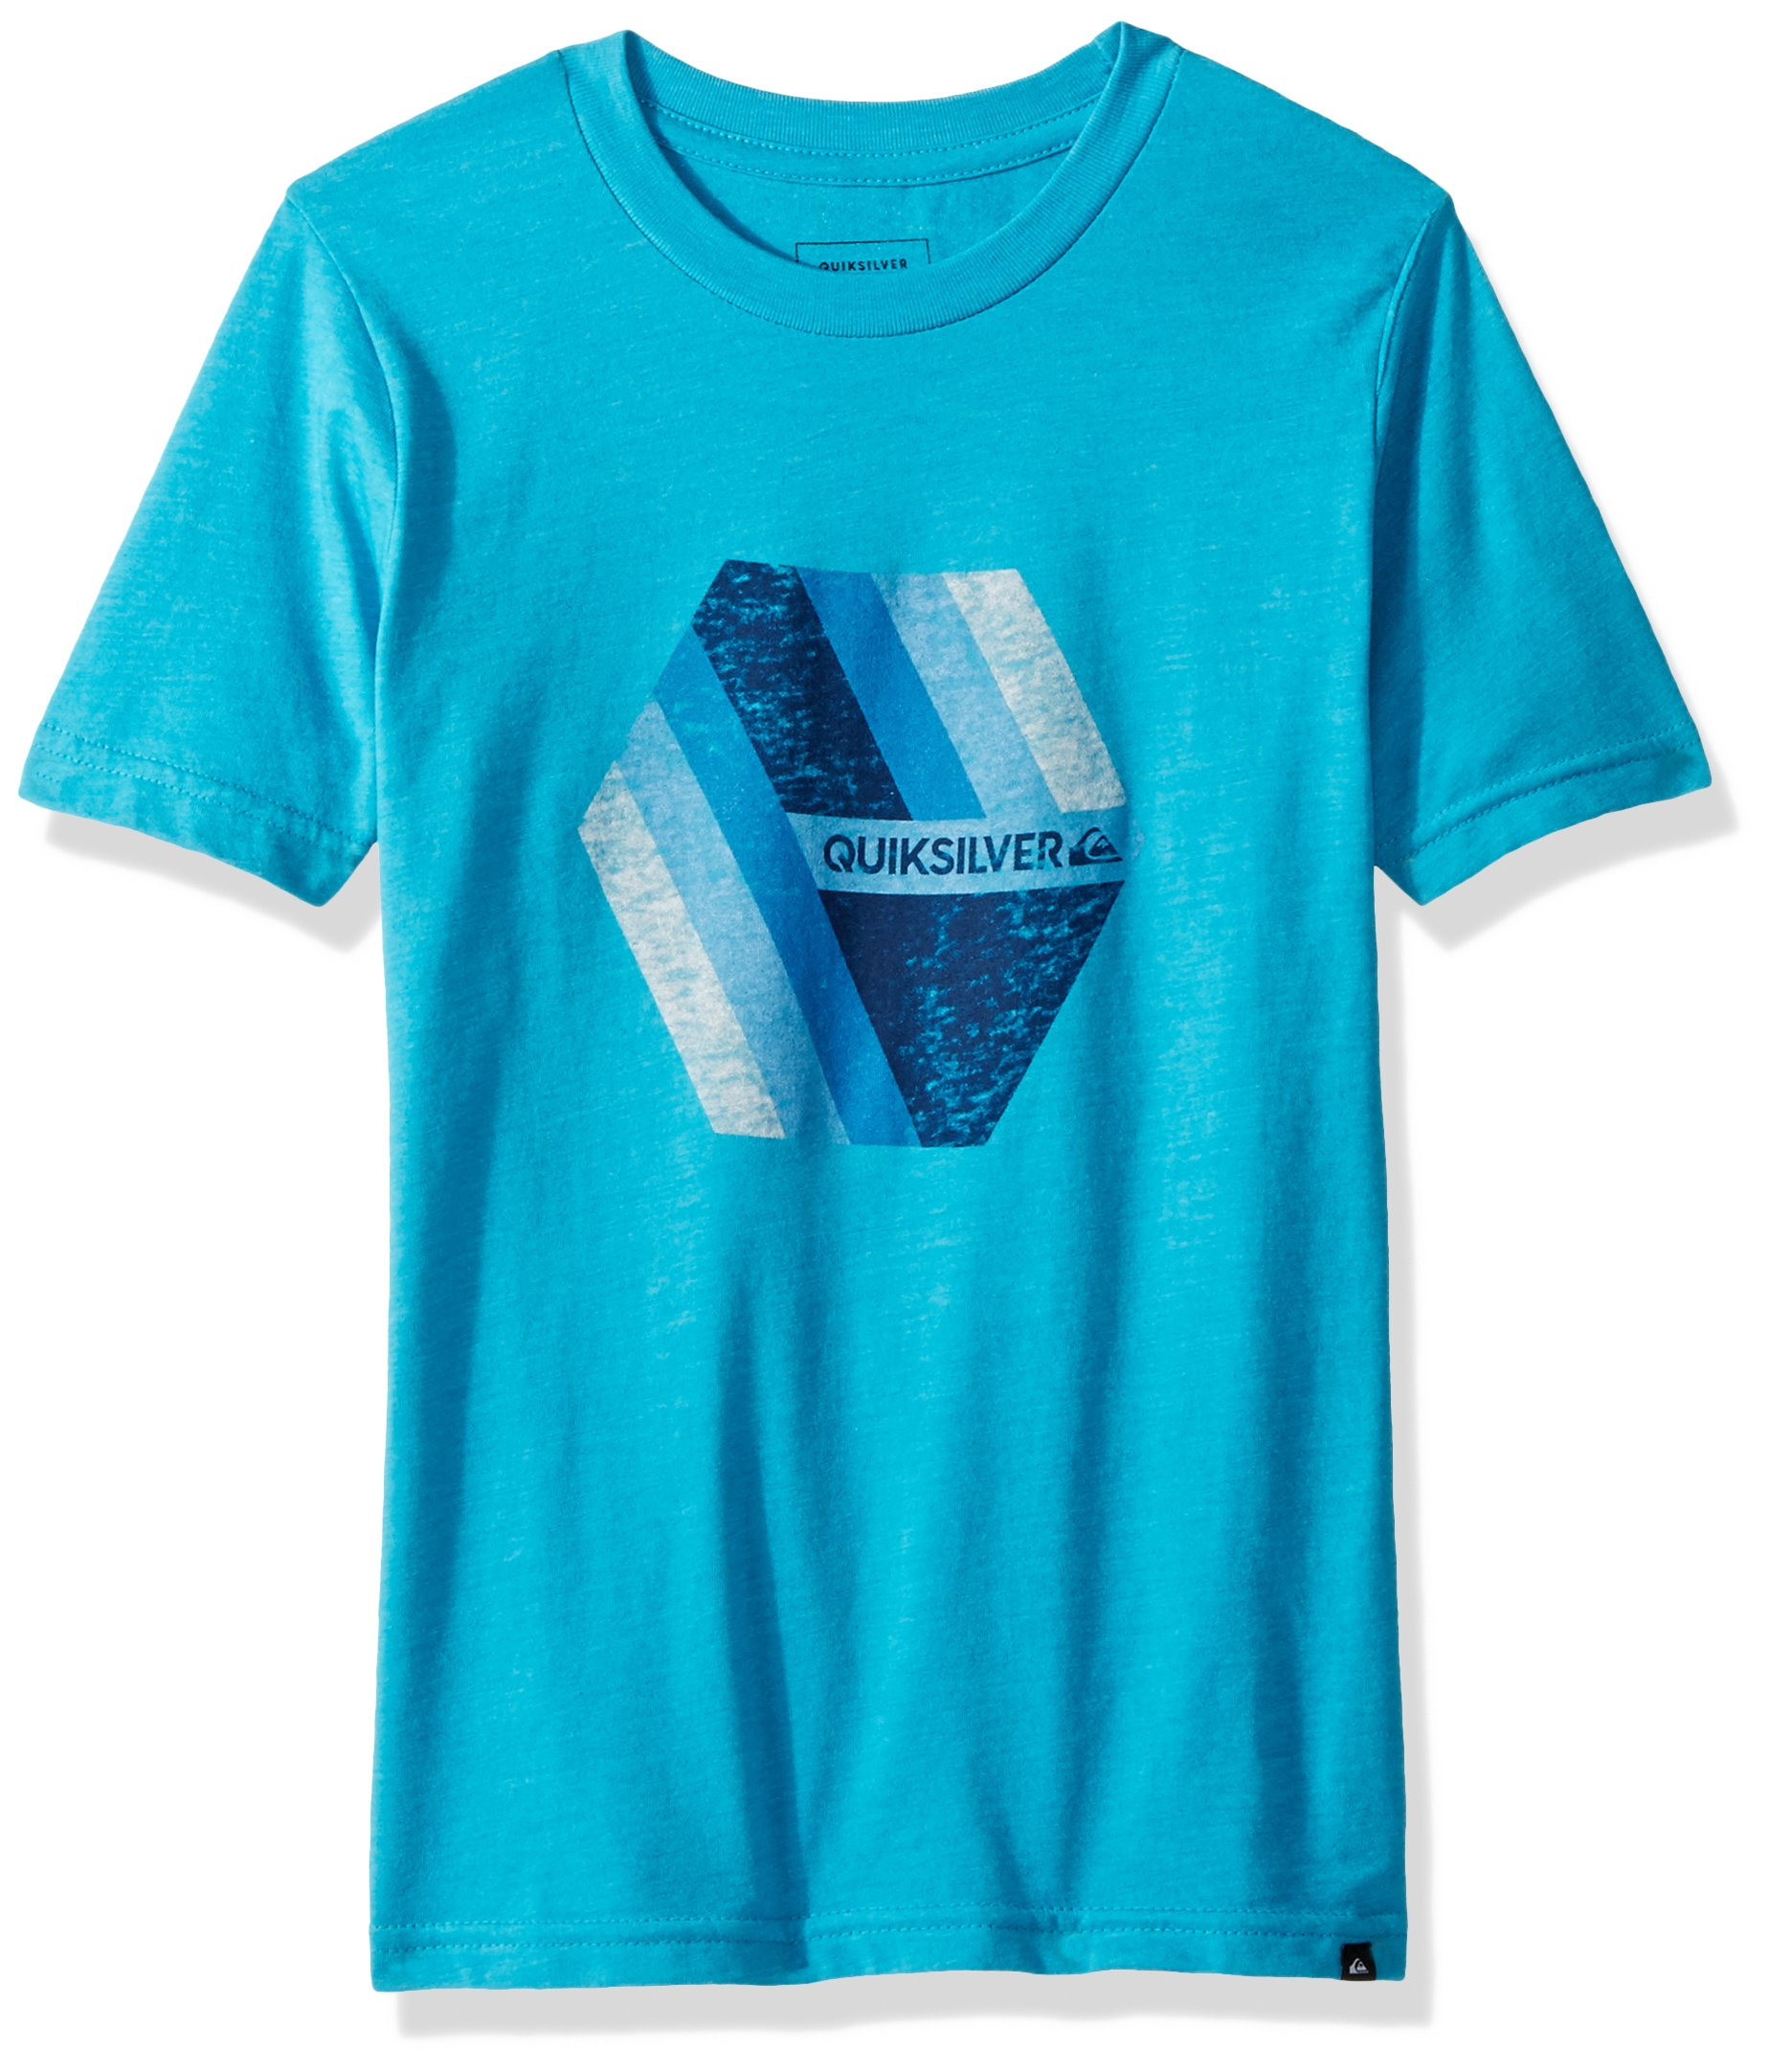 Quiksilver Big Boys' Retro Right Youth Tee Shirt, Typhoon Heather, XL/16